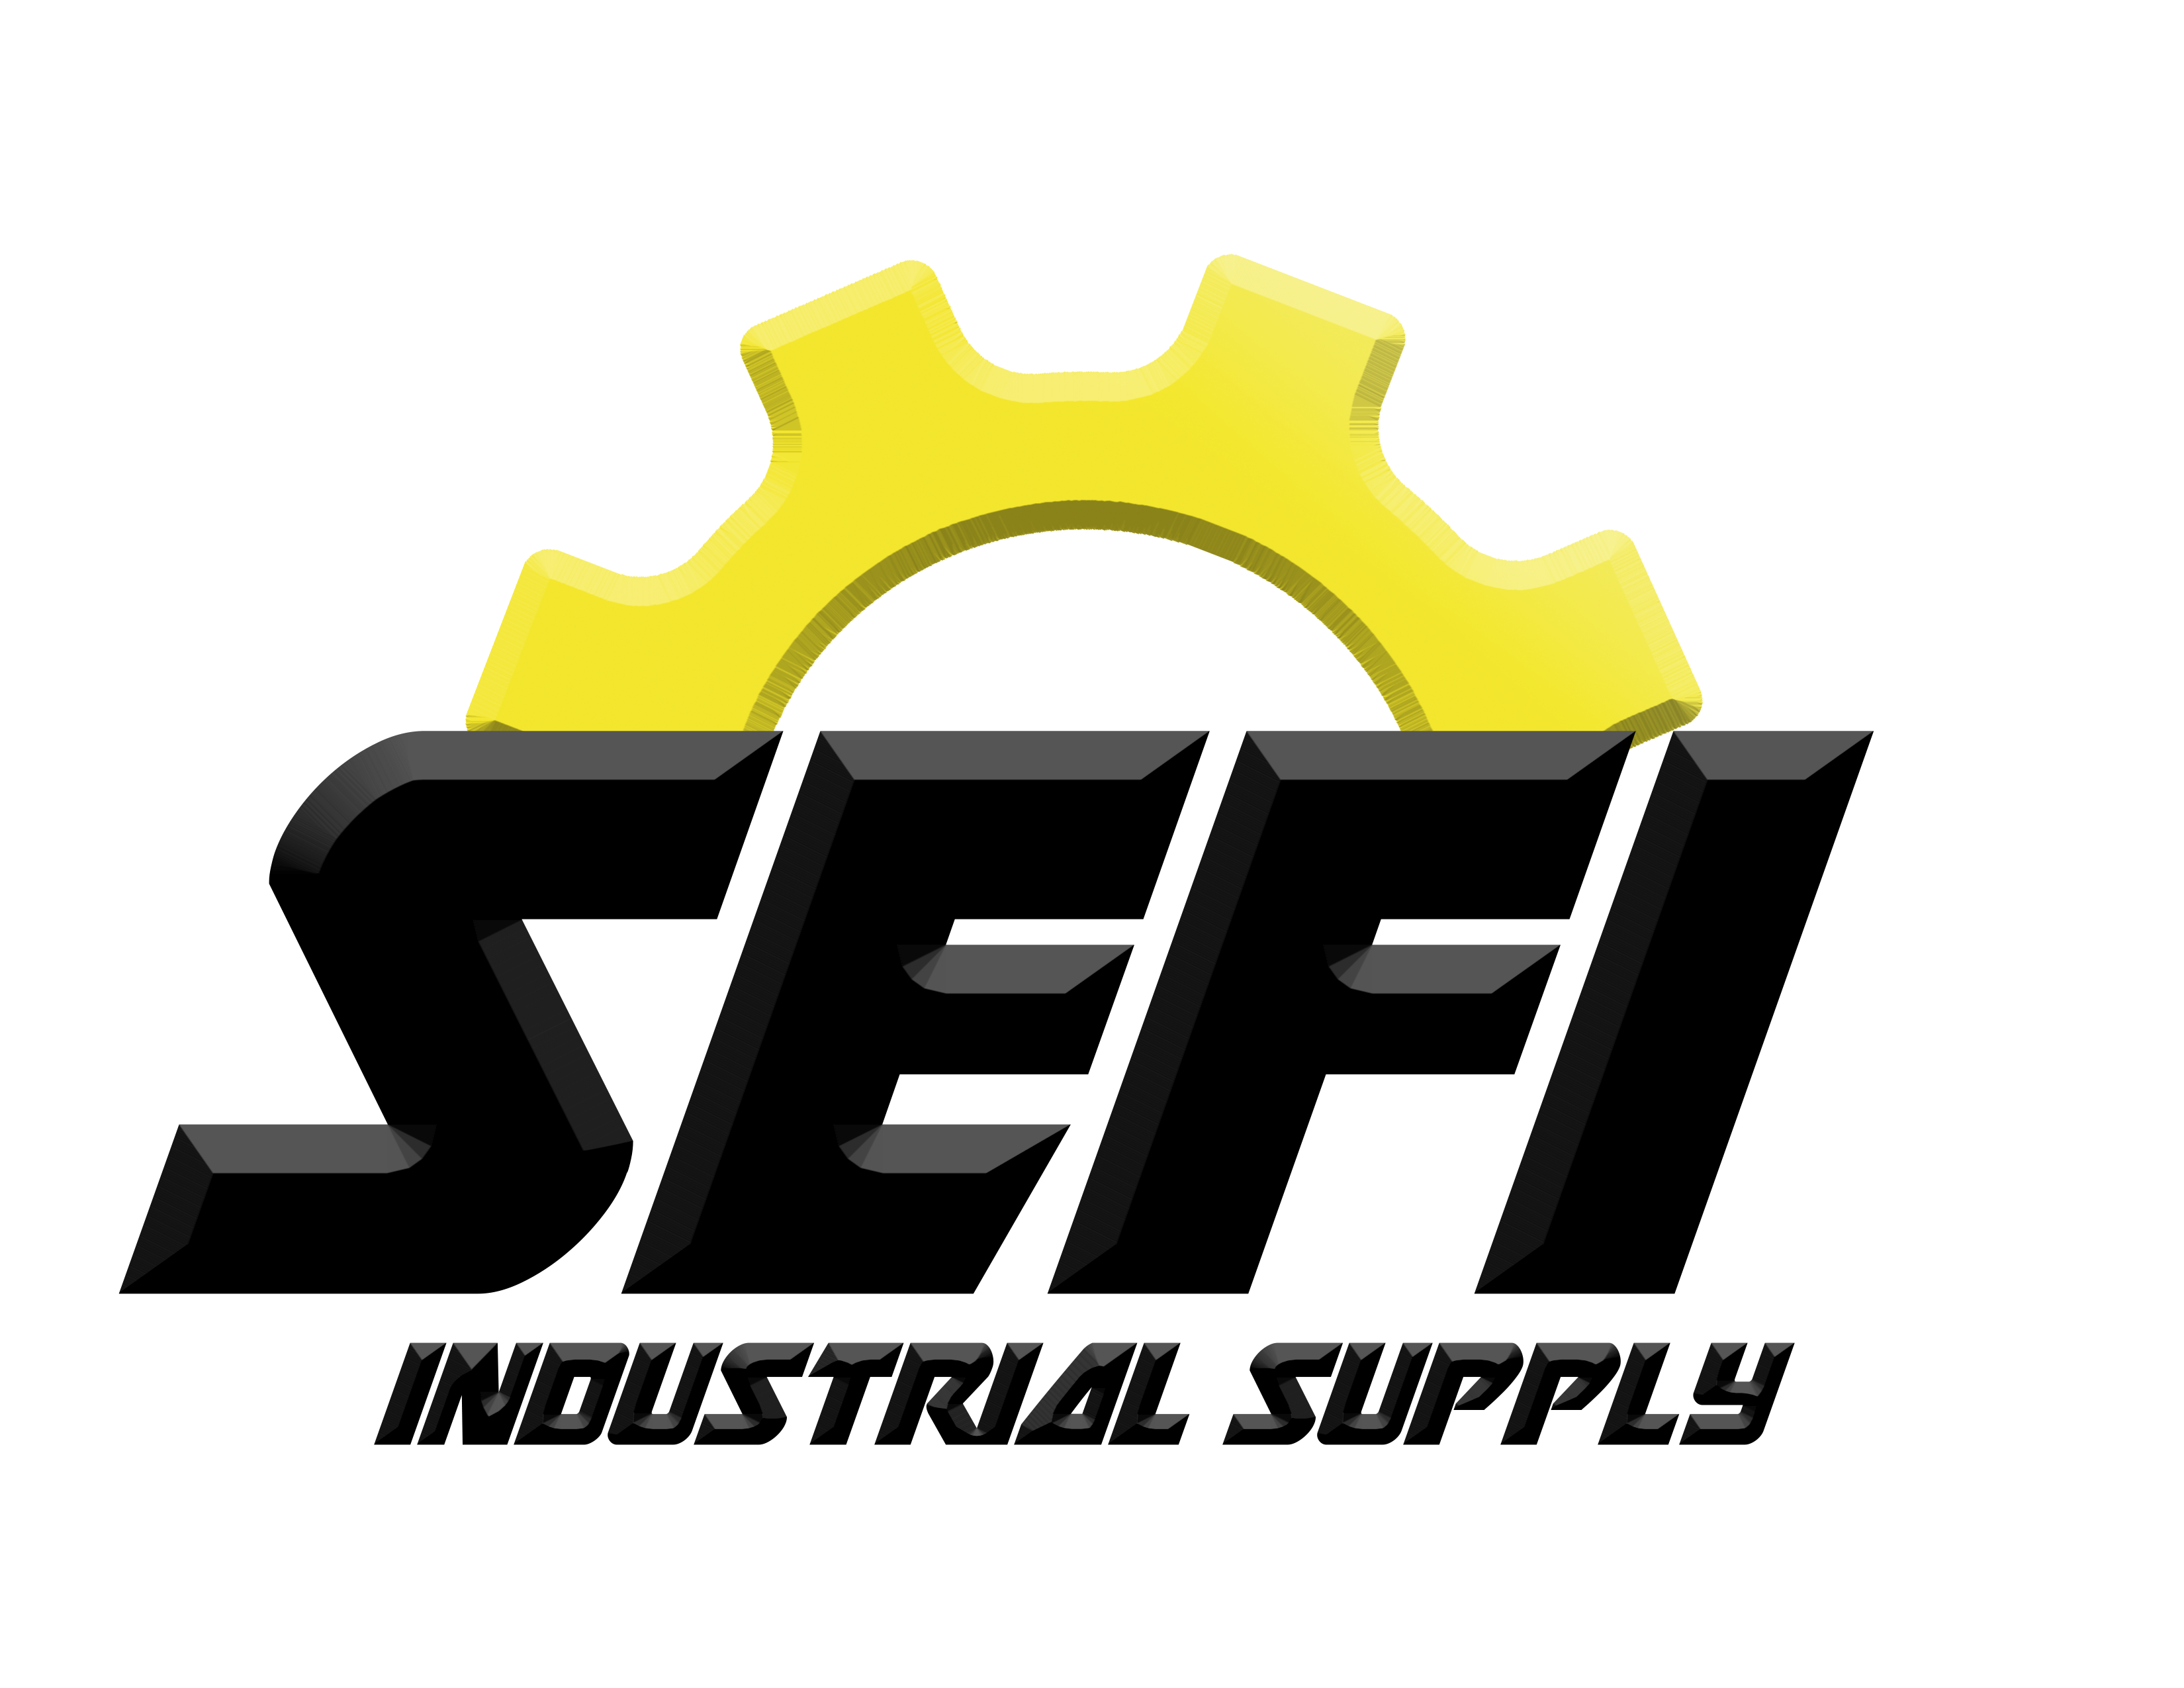 Sefi Supply Industrial S.A. de C.V.